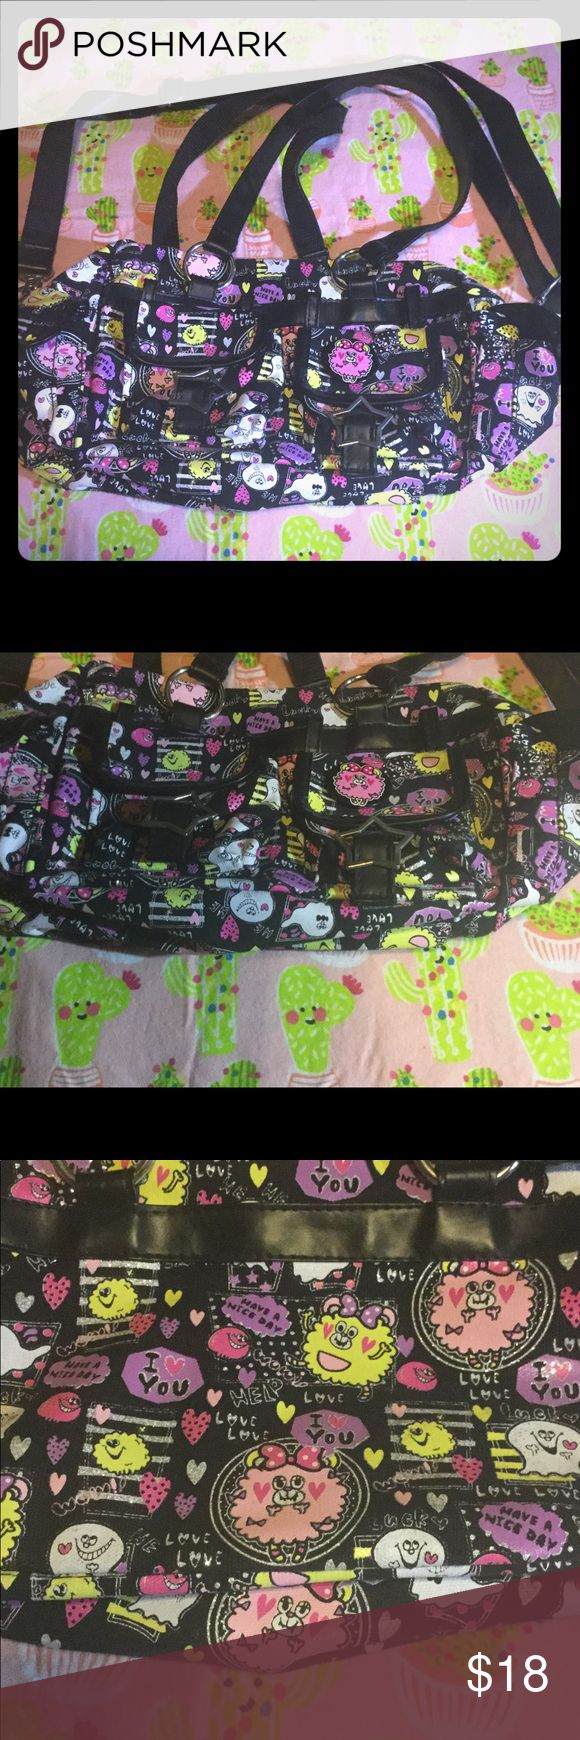 Kawaii Sanrio San-X Ghost Purse Bag Decora Colorful and cute Japanese bag purchased from a stationary store in Houston, TX! Black background with a print of colorful fluff ball creatures and ghosts, with 4 outer snap pockets (the 2 in front are accented with star-shaped buckles) and 2 interior pockets. Perfect for the Japanese street fashion lover; definitely looks like something from an old issue of Fruits magazine, and would compliment Your Harajuku-inspired look! ⚡️Bundle or make me an…